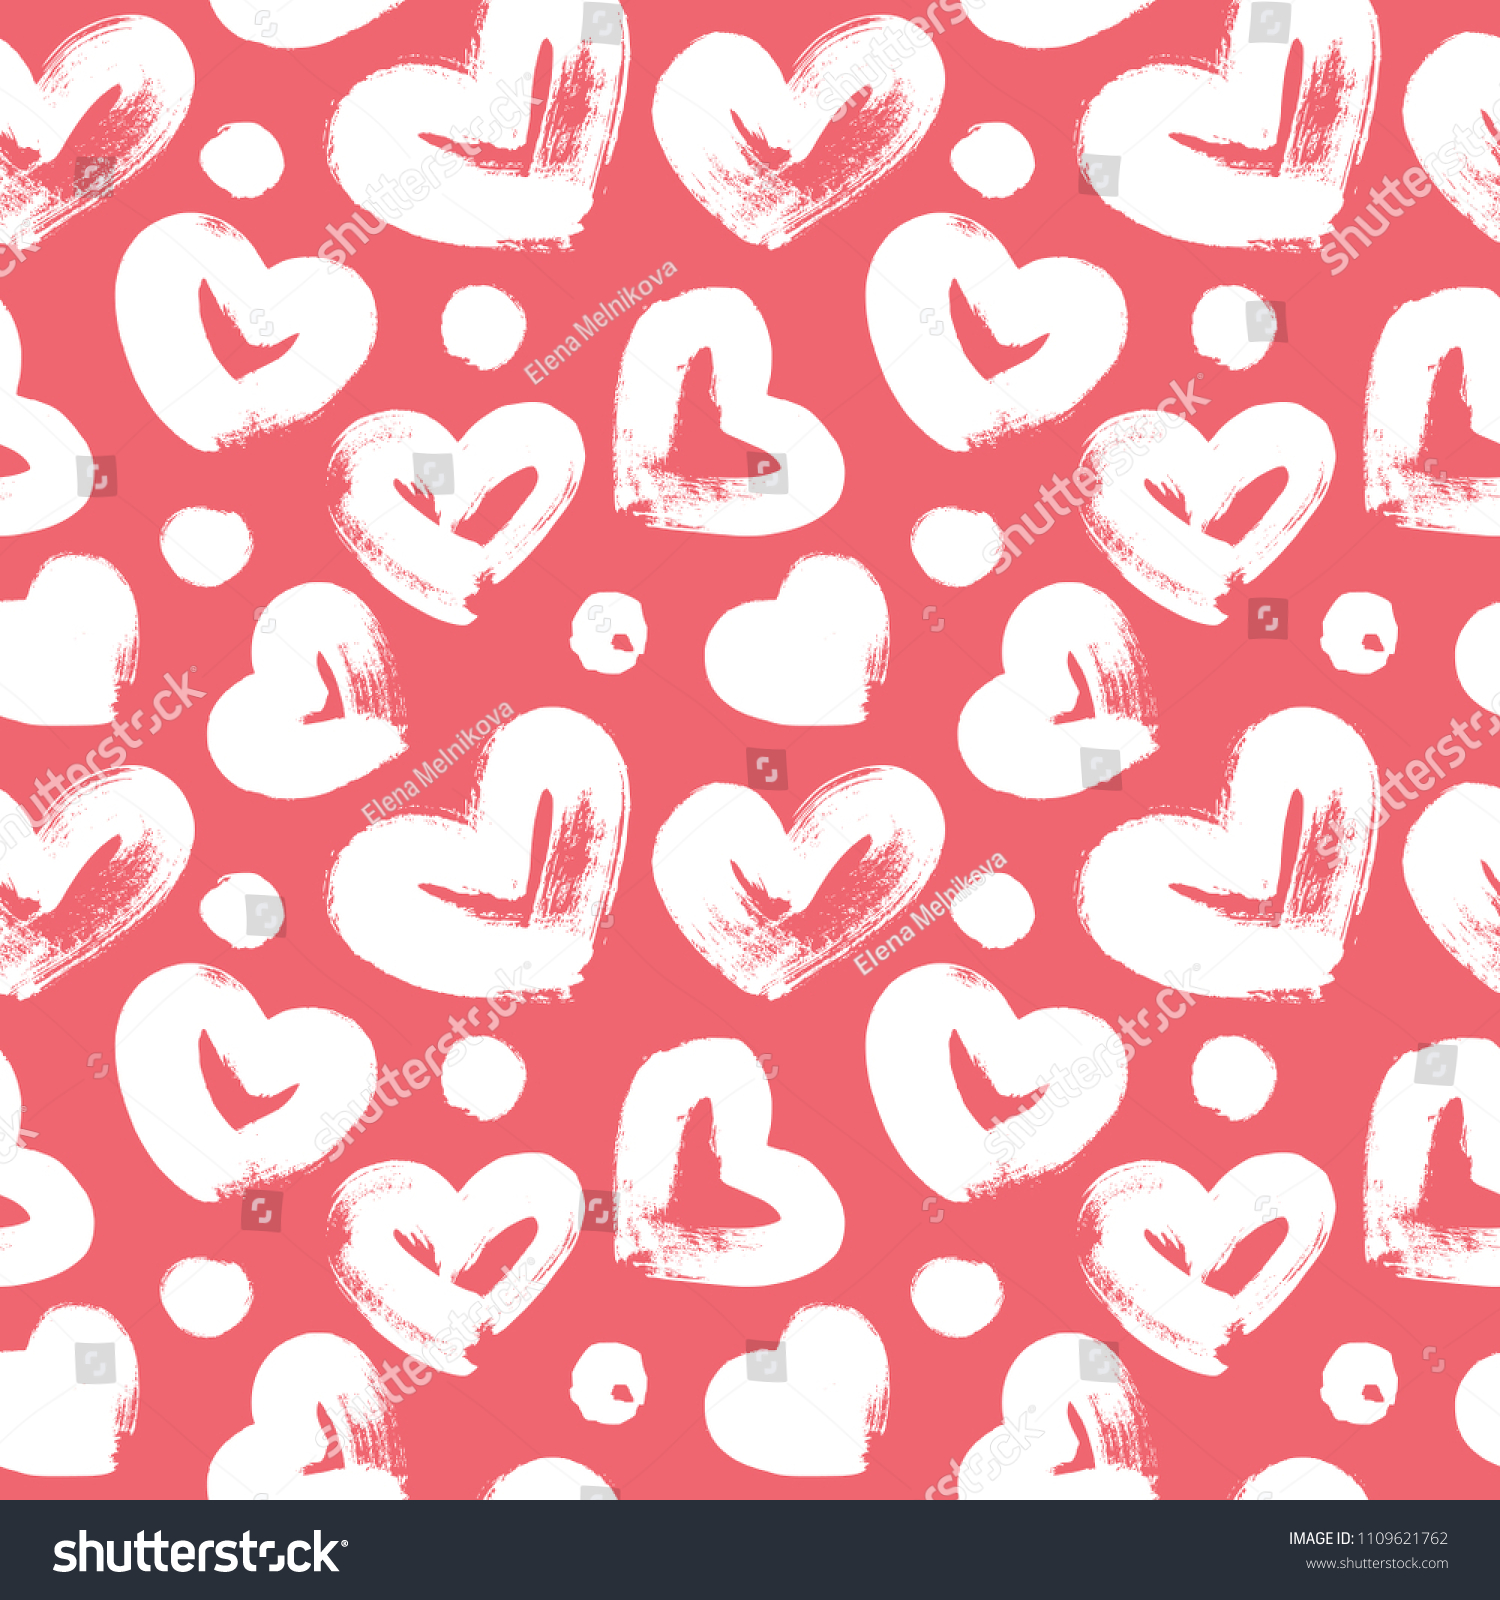 Seamless Pattern With Hand Drawn Heart Hearts Painted Dry Brush